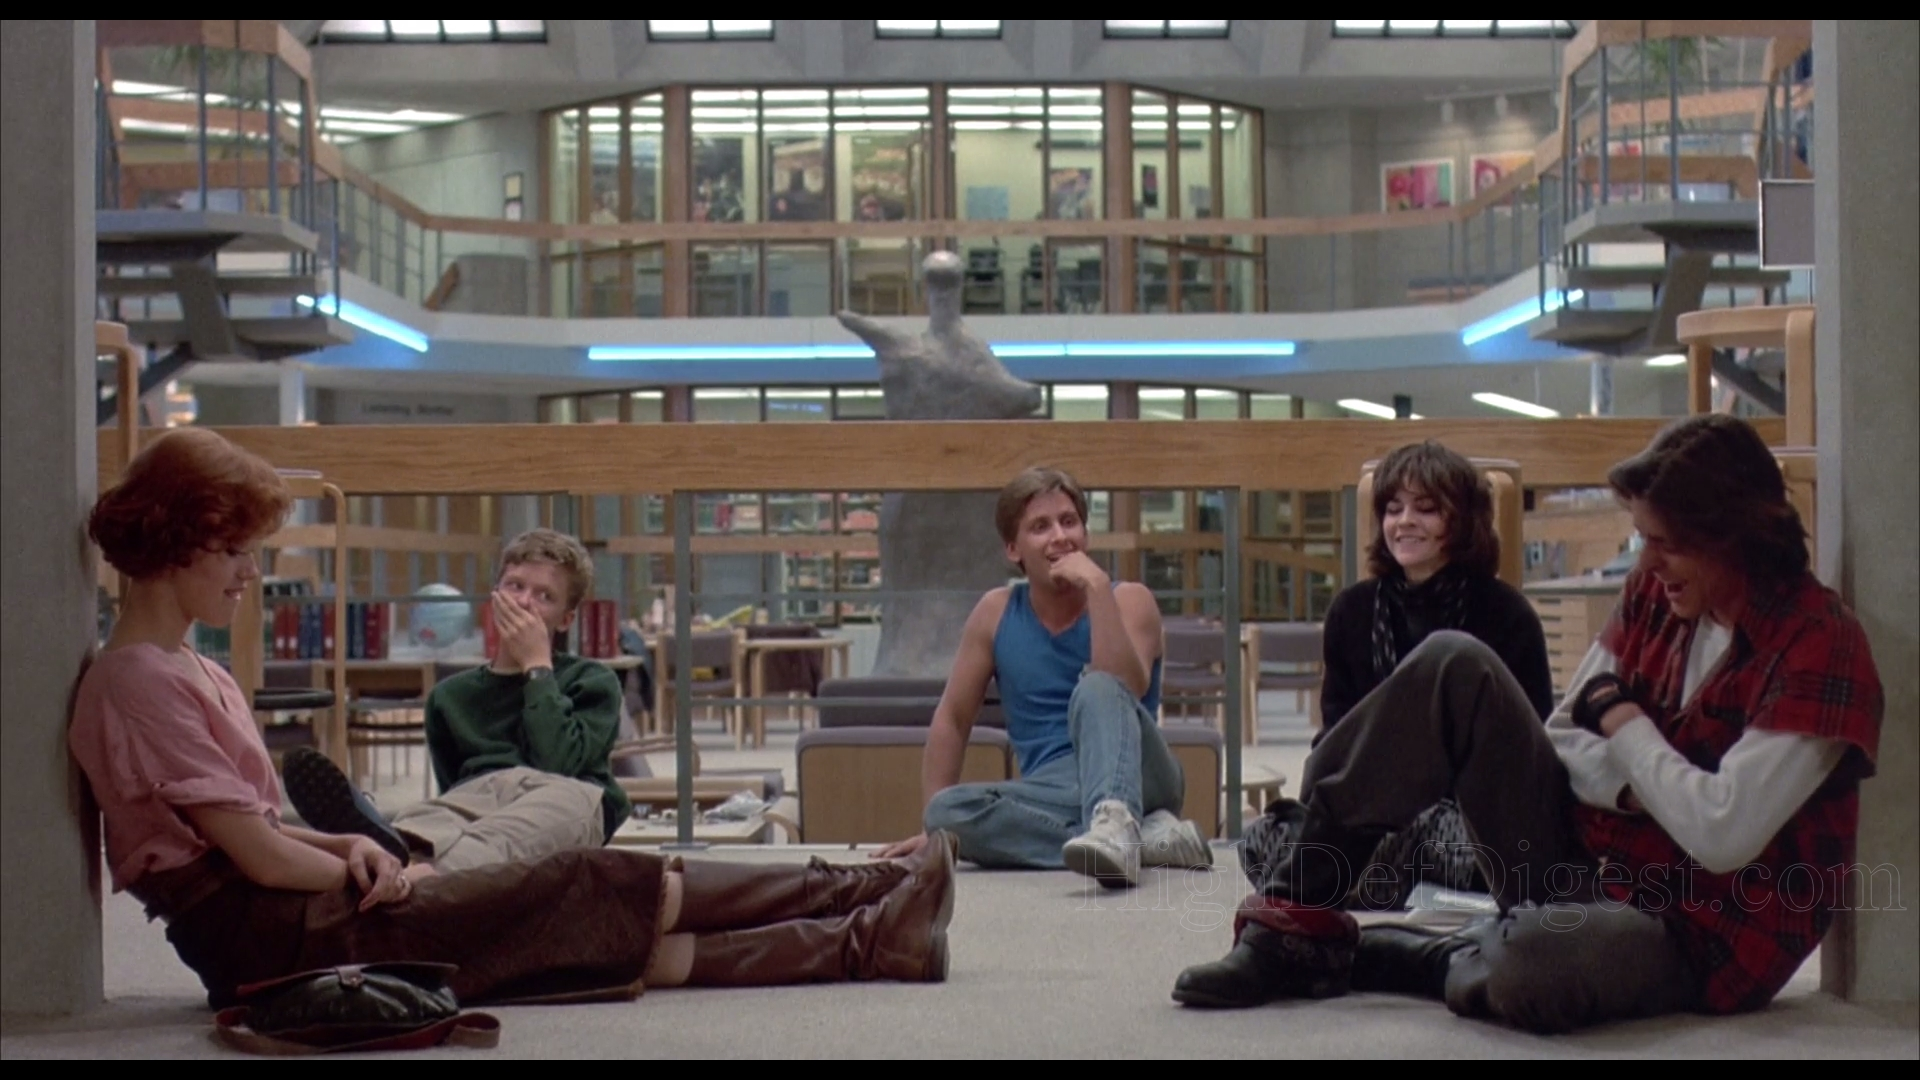 the breakfast club film review essay The breakfast club, written and directed by john hughes in 1985, is an american teen drama one of the most influential movies of its time the breakfast club was named the best high school movie of all time by entertainment weekly in 2006.